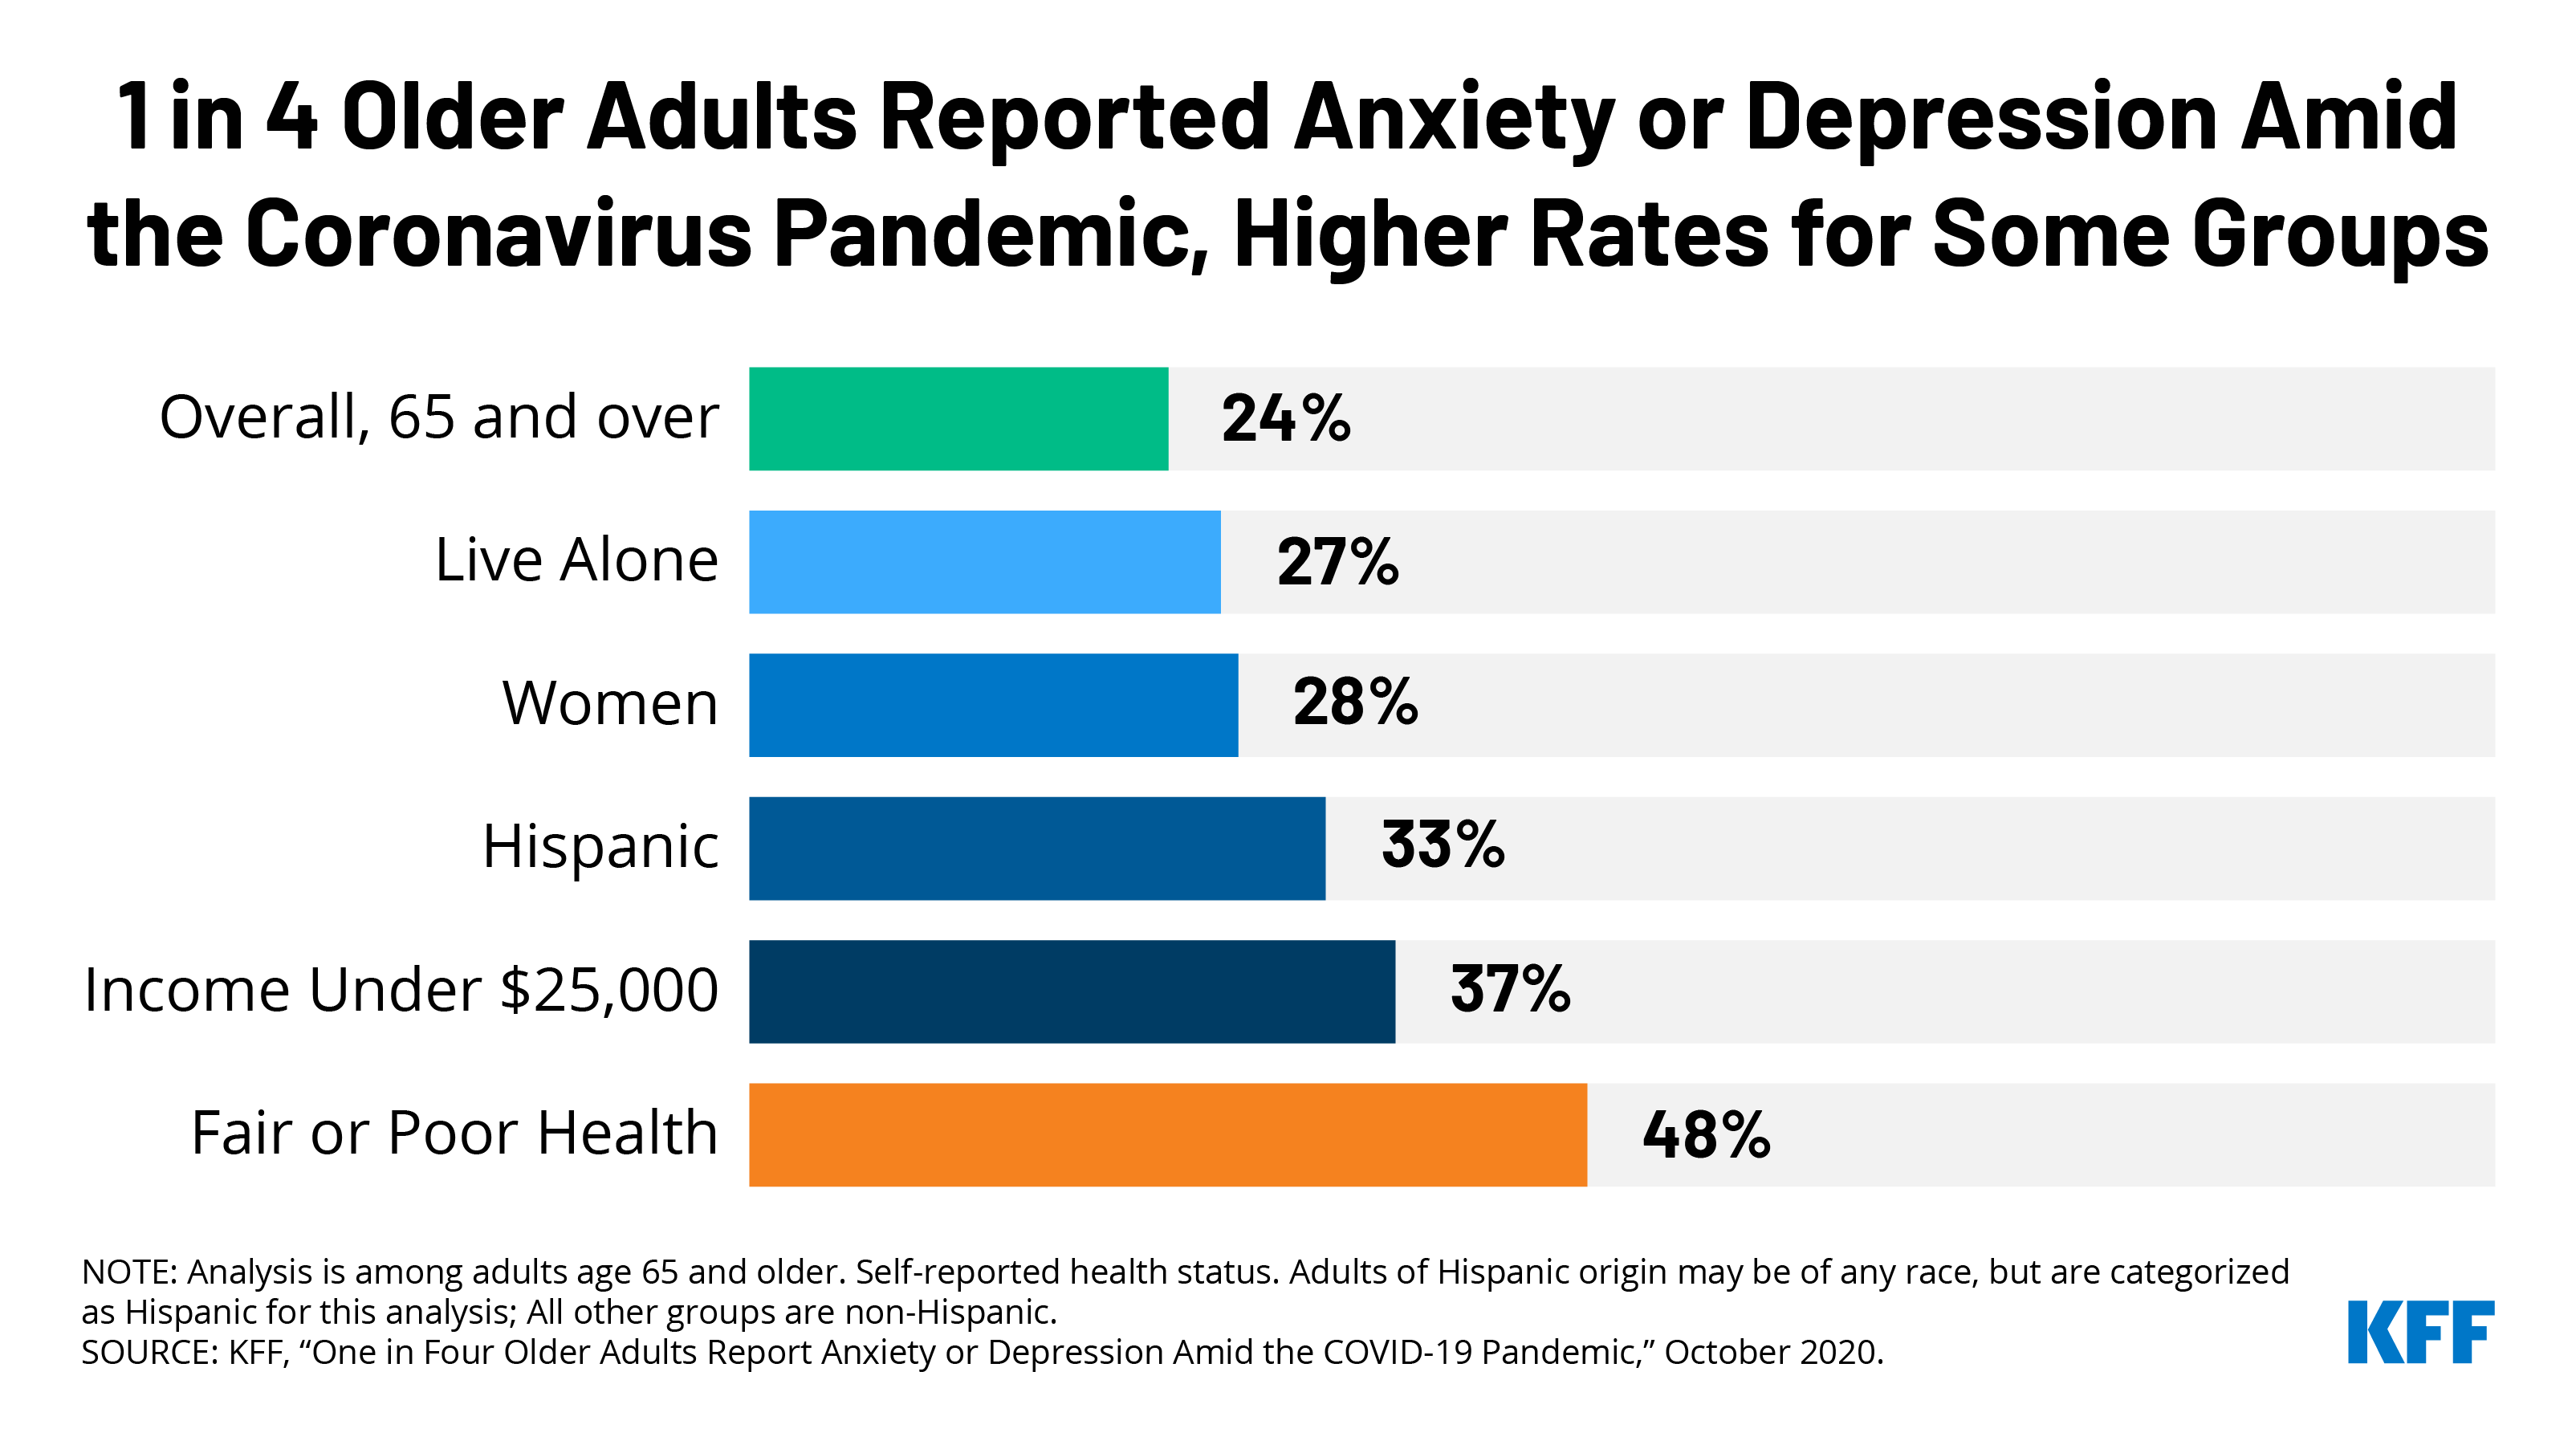 Half of Older Adults in Worse Health Have Reported Anxiety ...